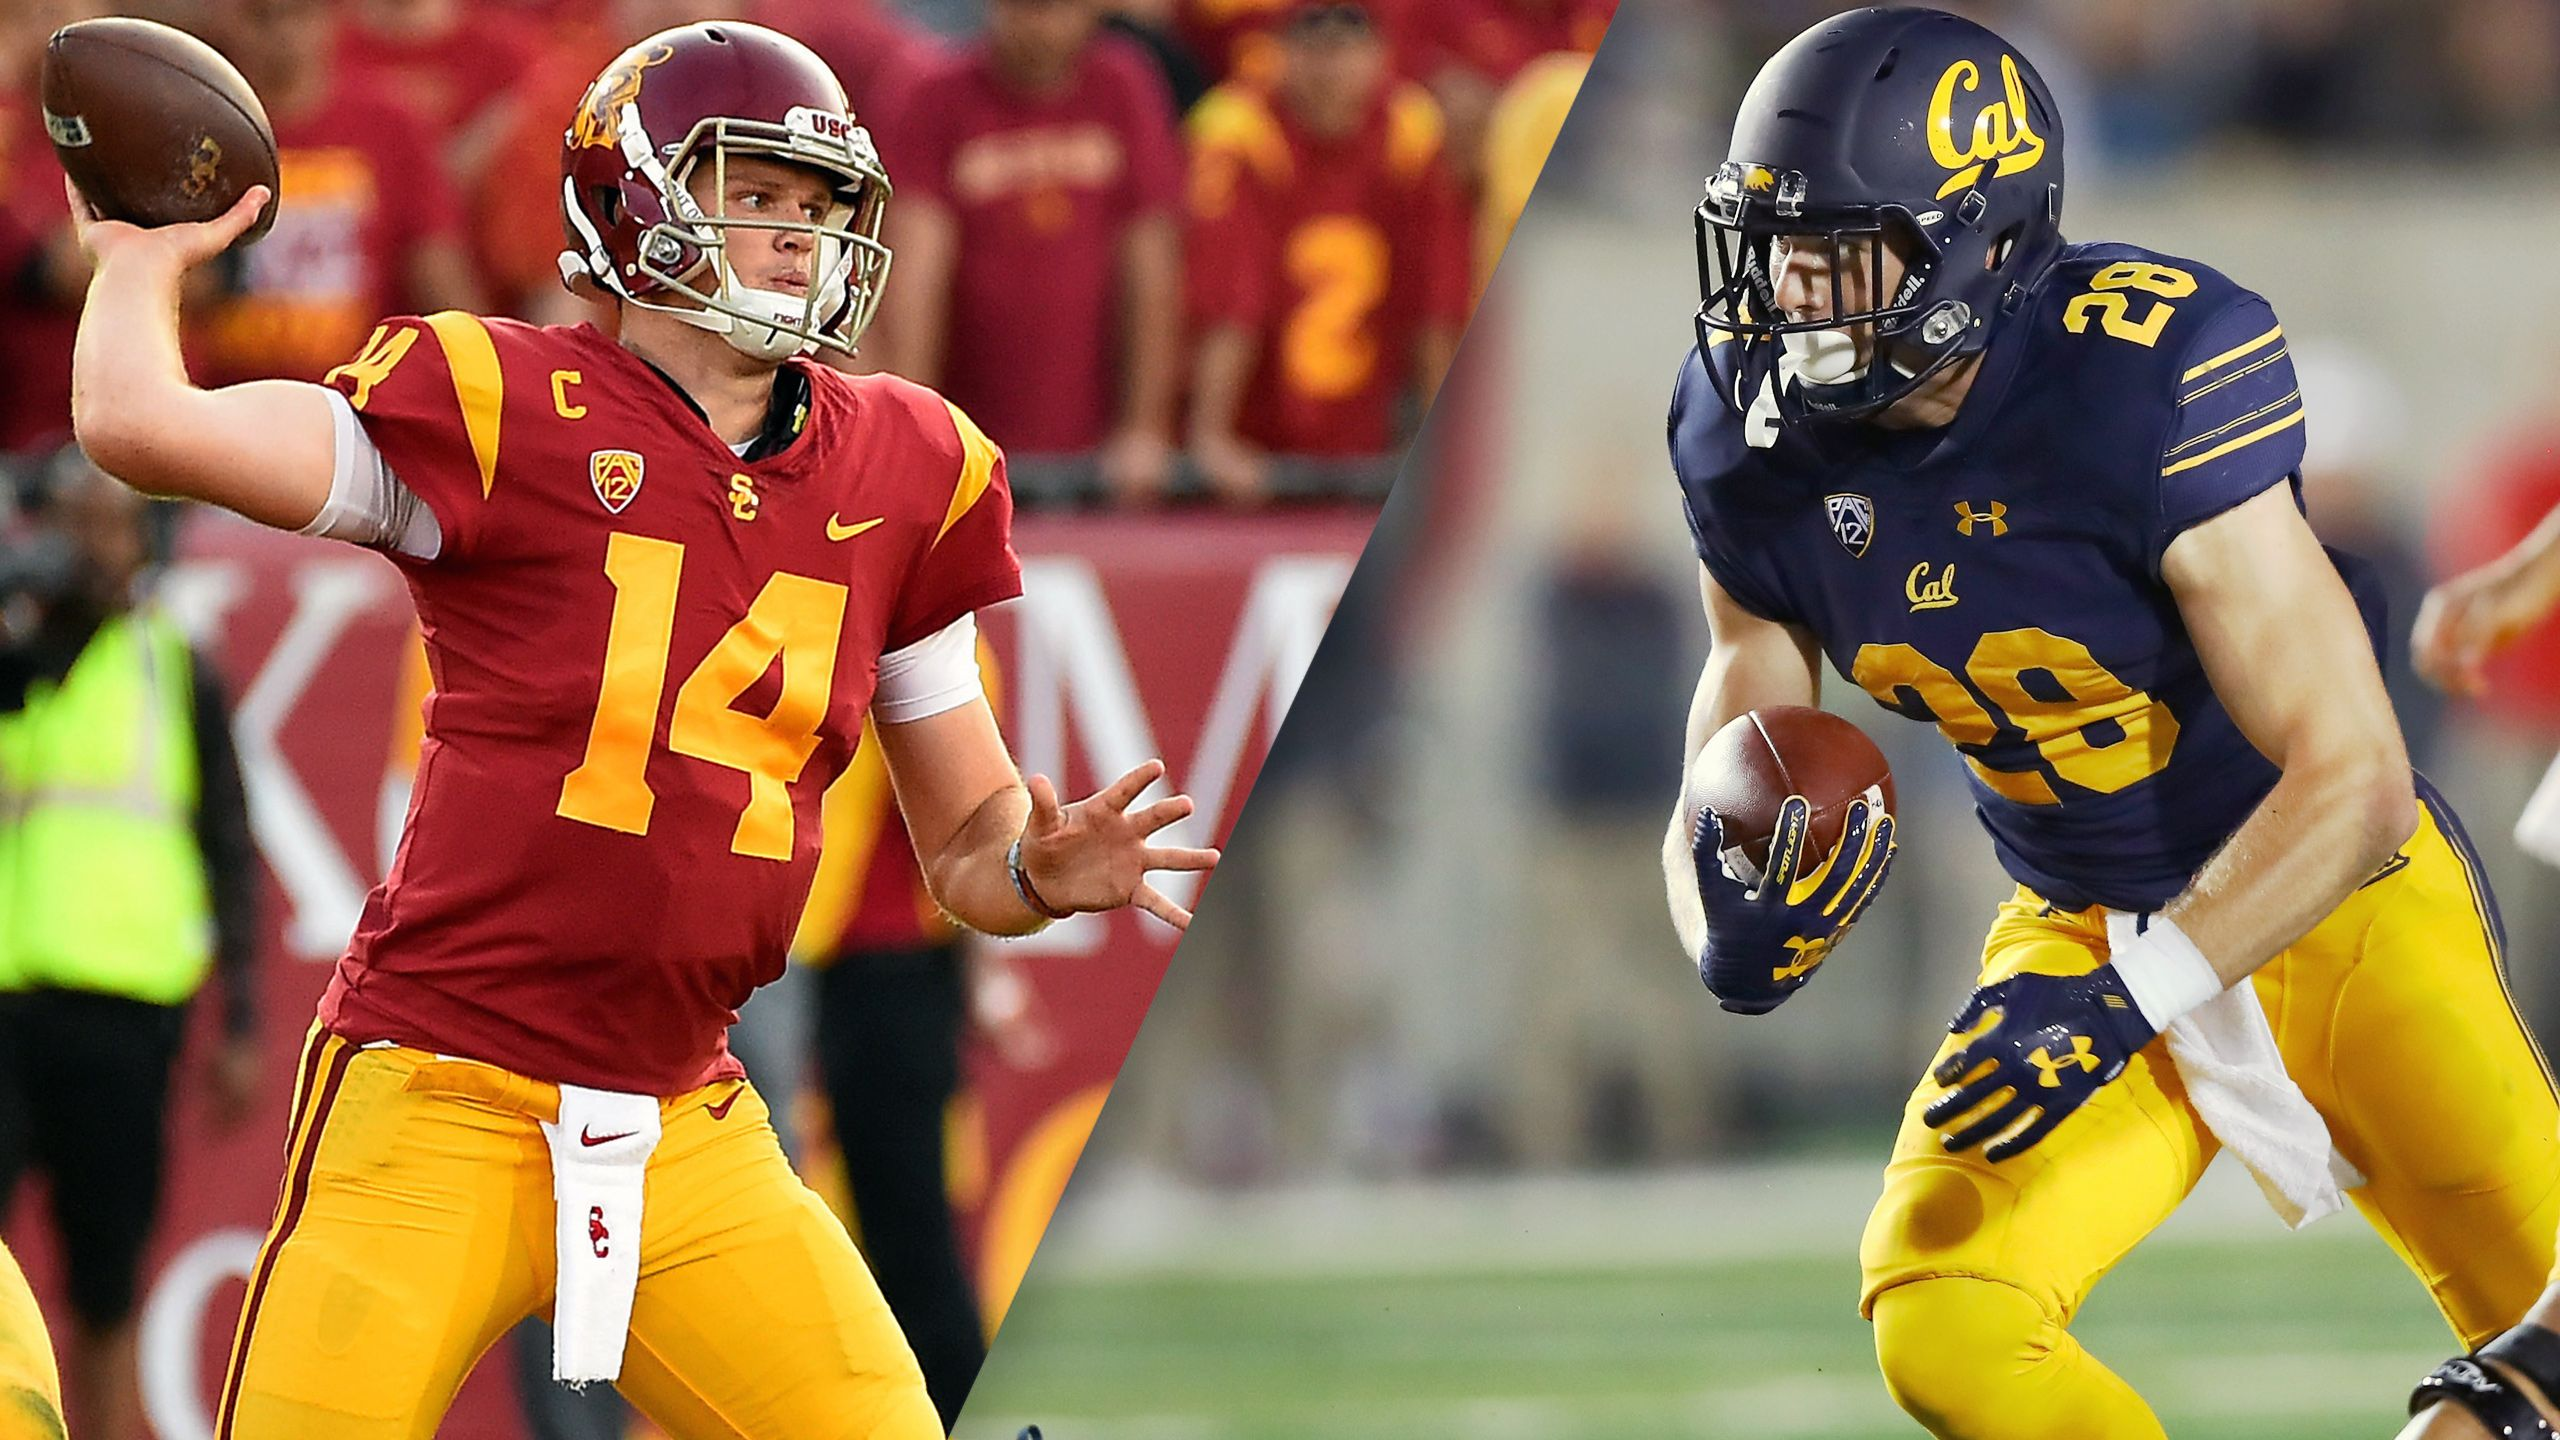 #5 USC vs. California (Football) (re-air)